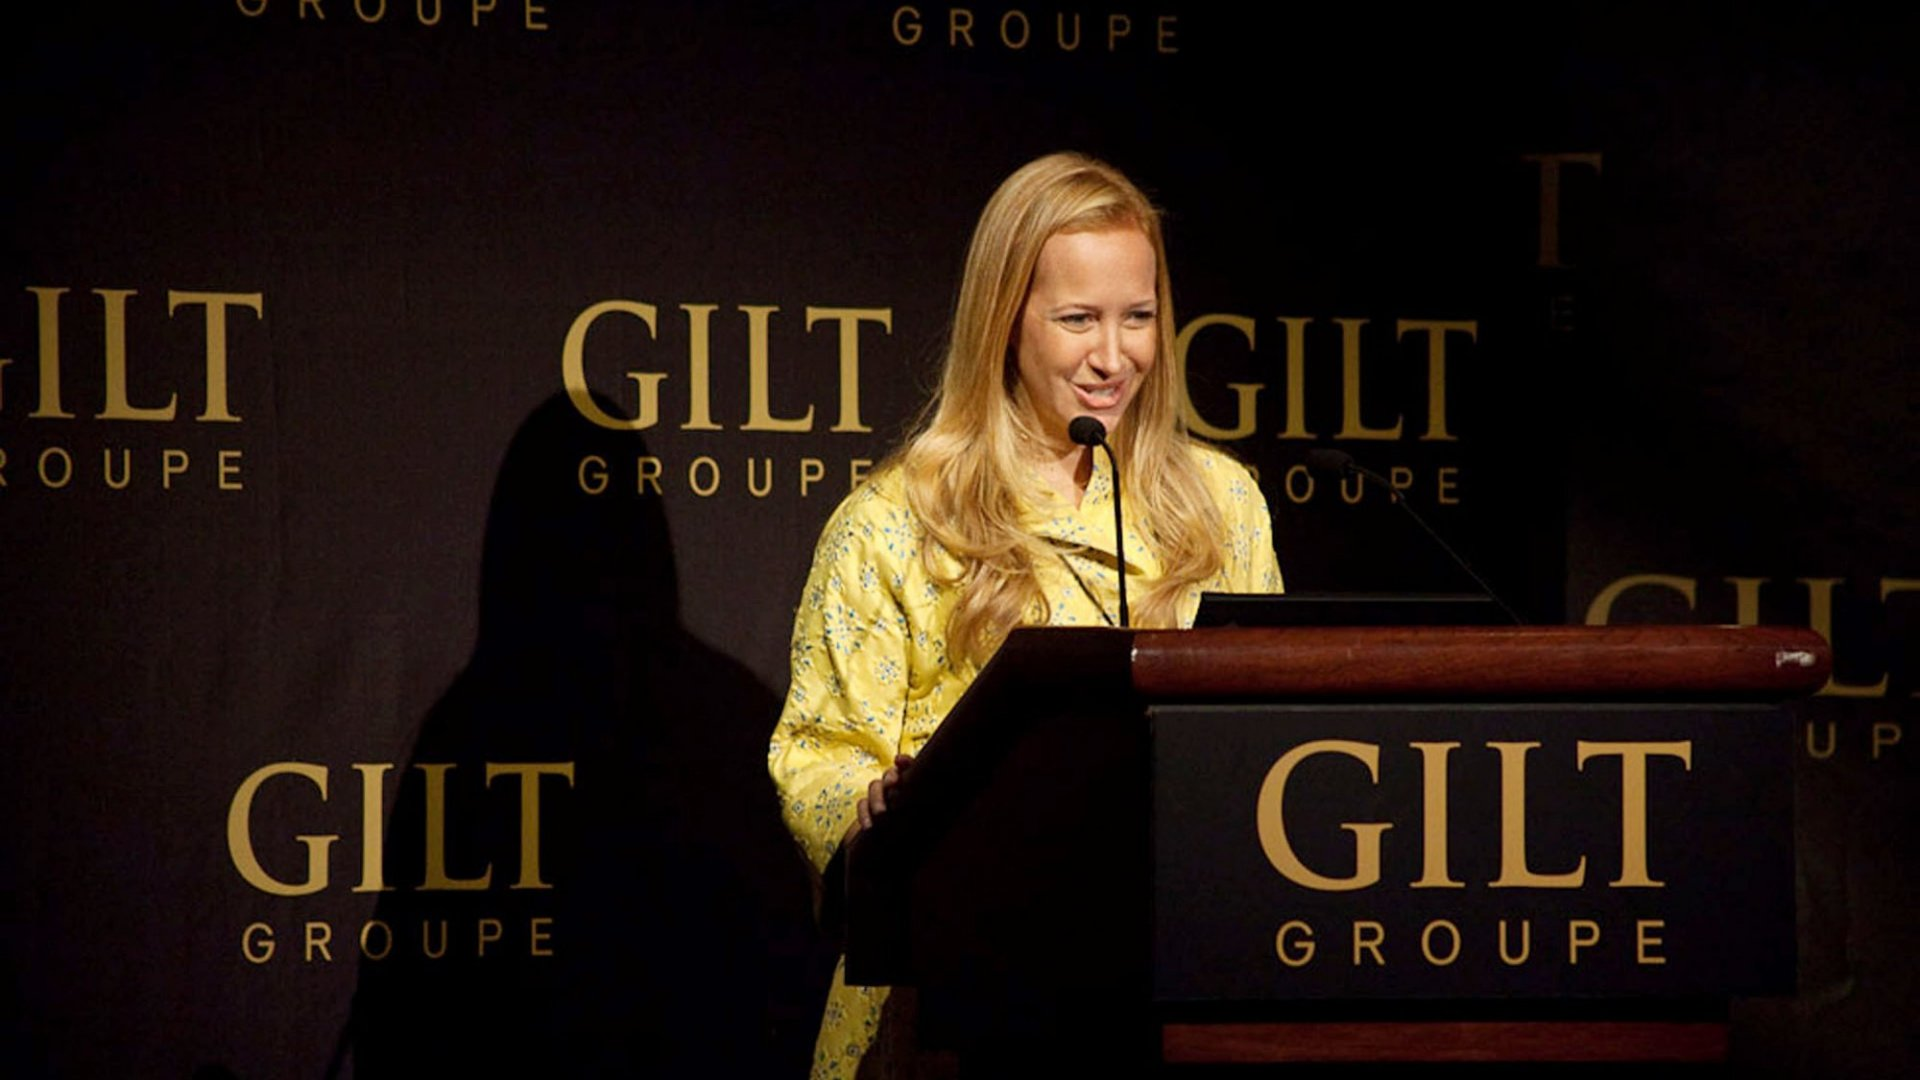 Once Valued Near $1 Billion, Flash Sales Startup Gilt Groupe to Sell for a Reported $250 Million